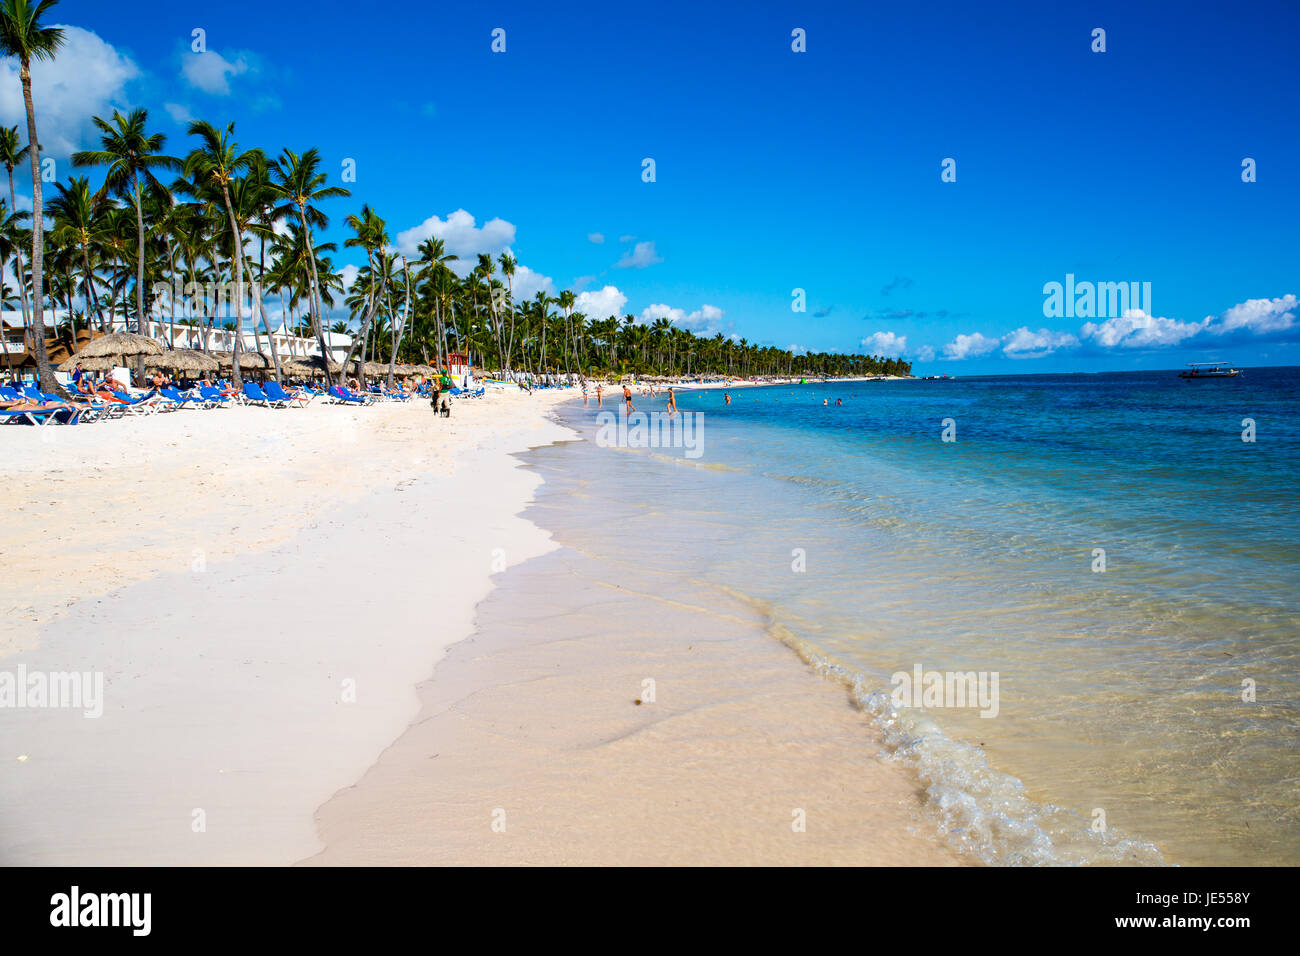 beautiful landscape with big green palm trees in the foreground to the background of tourist umbrellas and sunbeds - Stock Image